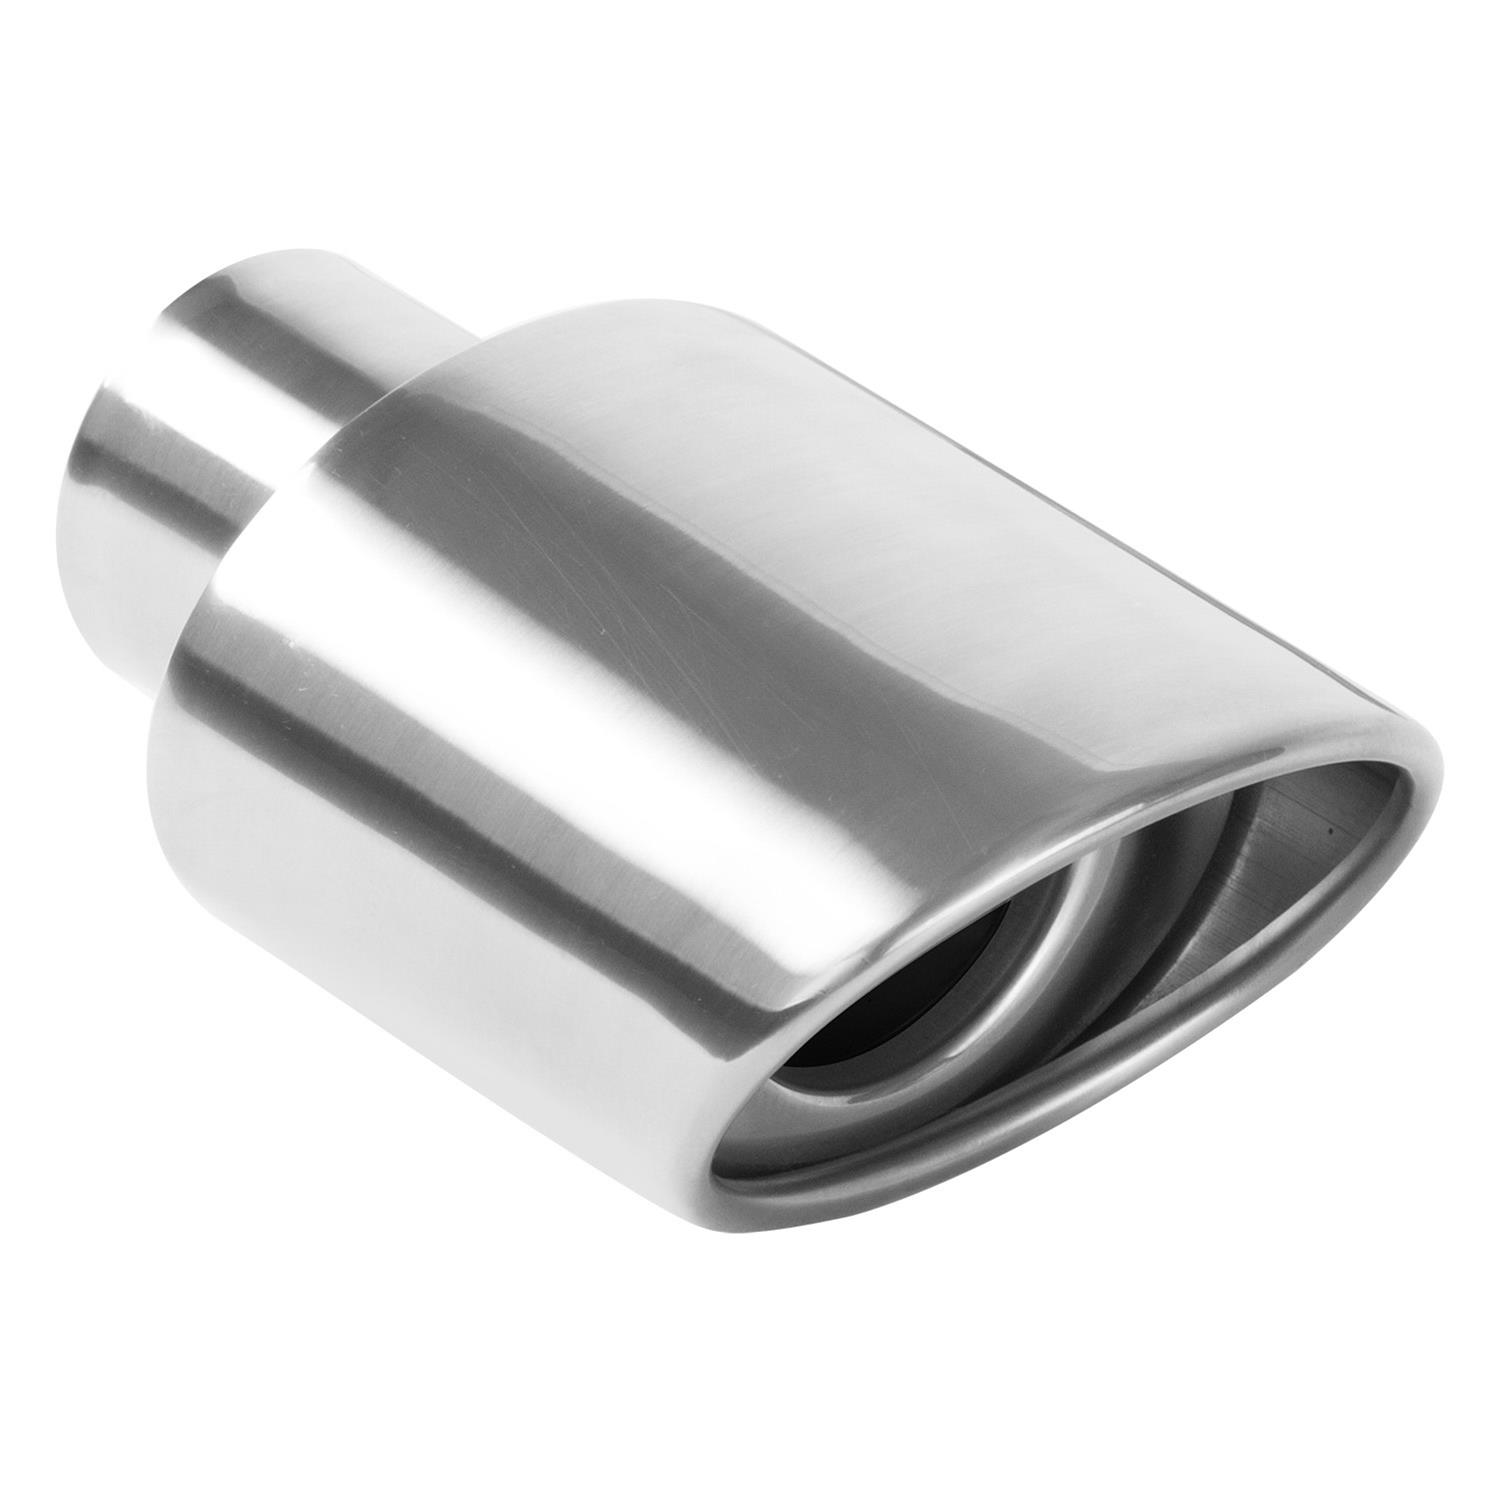 Magnaflow stainless steel exhaust tips free